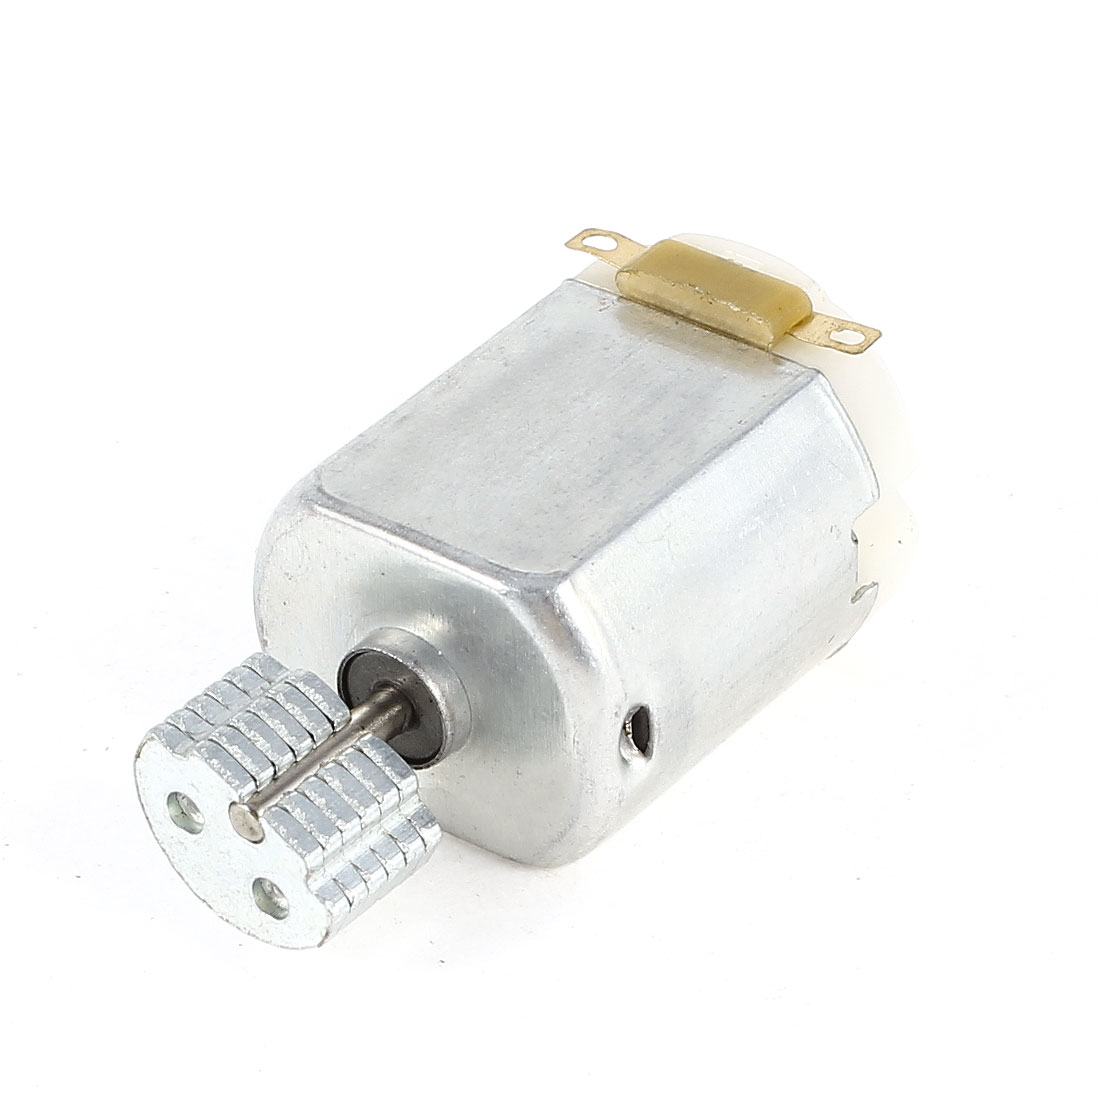 Mini Vibration Vibrating Electric Motor DC 3V 5200RPM 130 Model for Toys